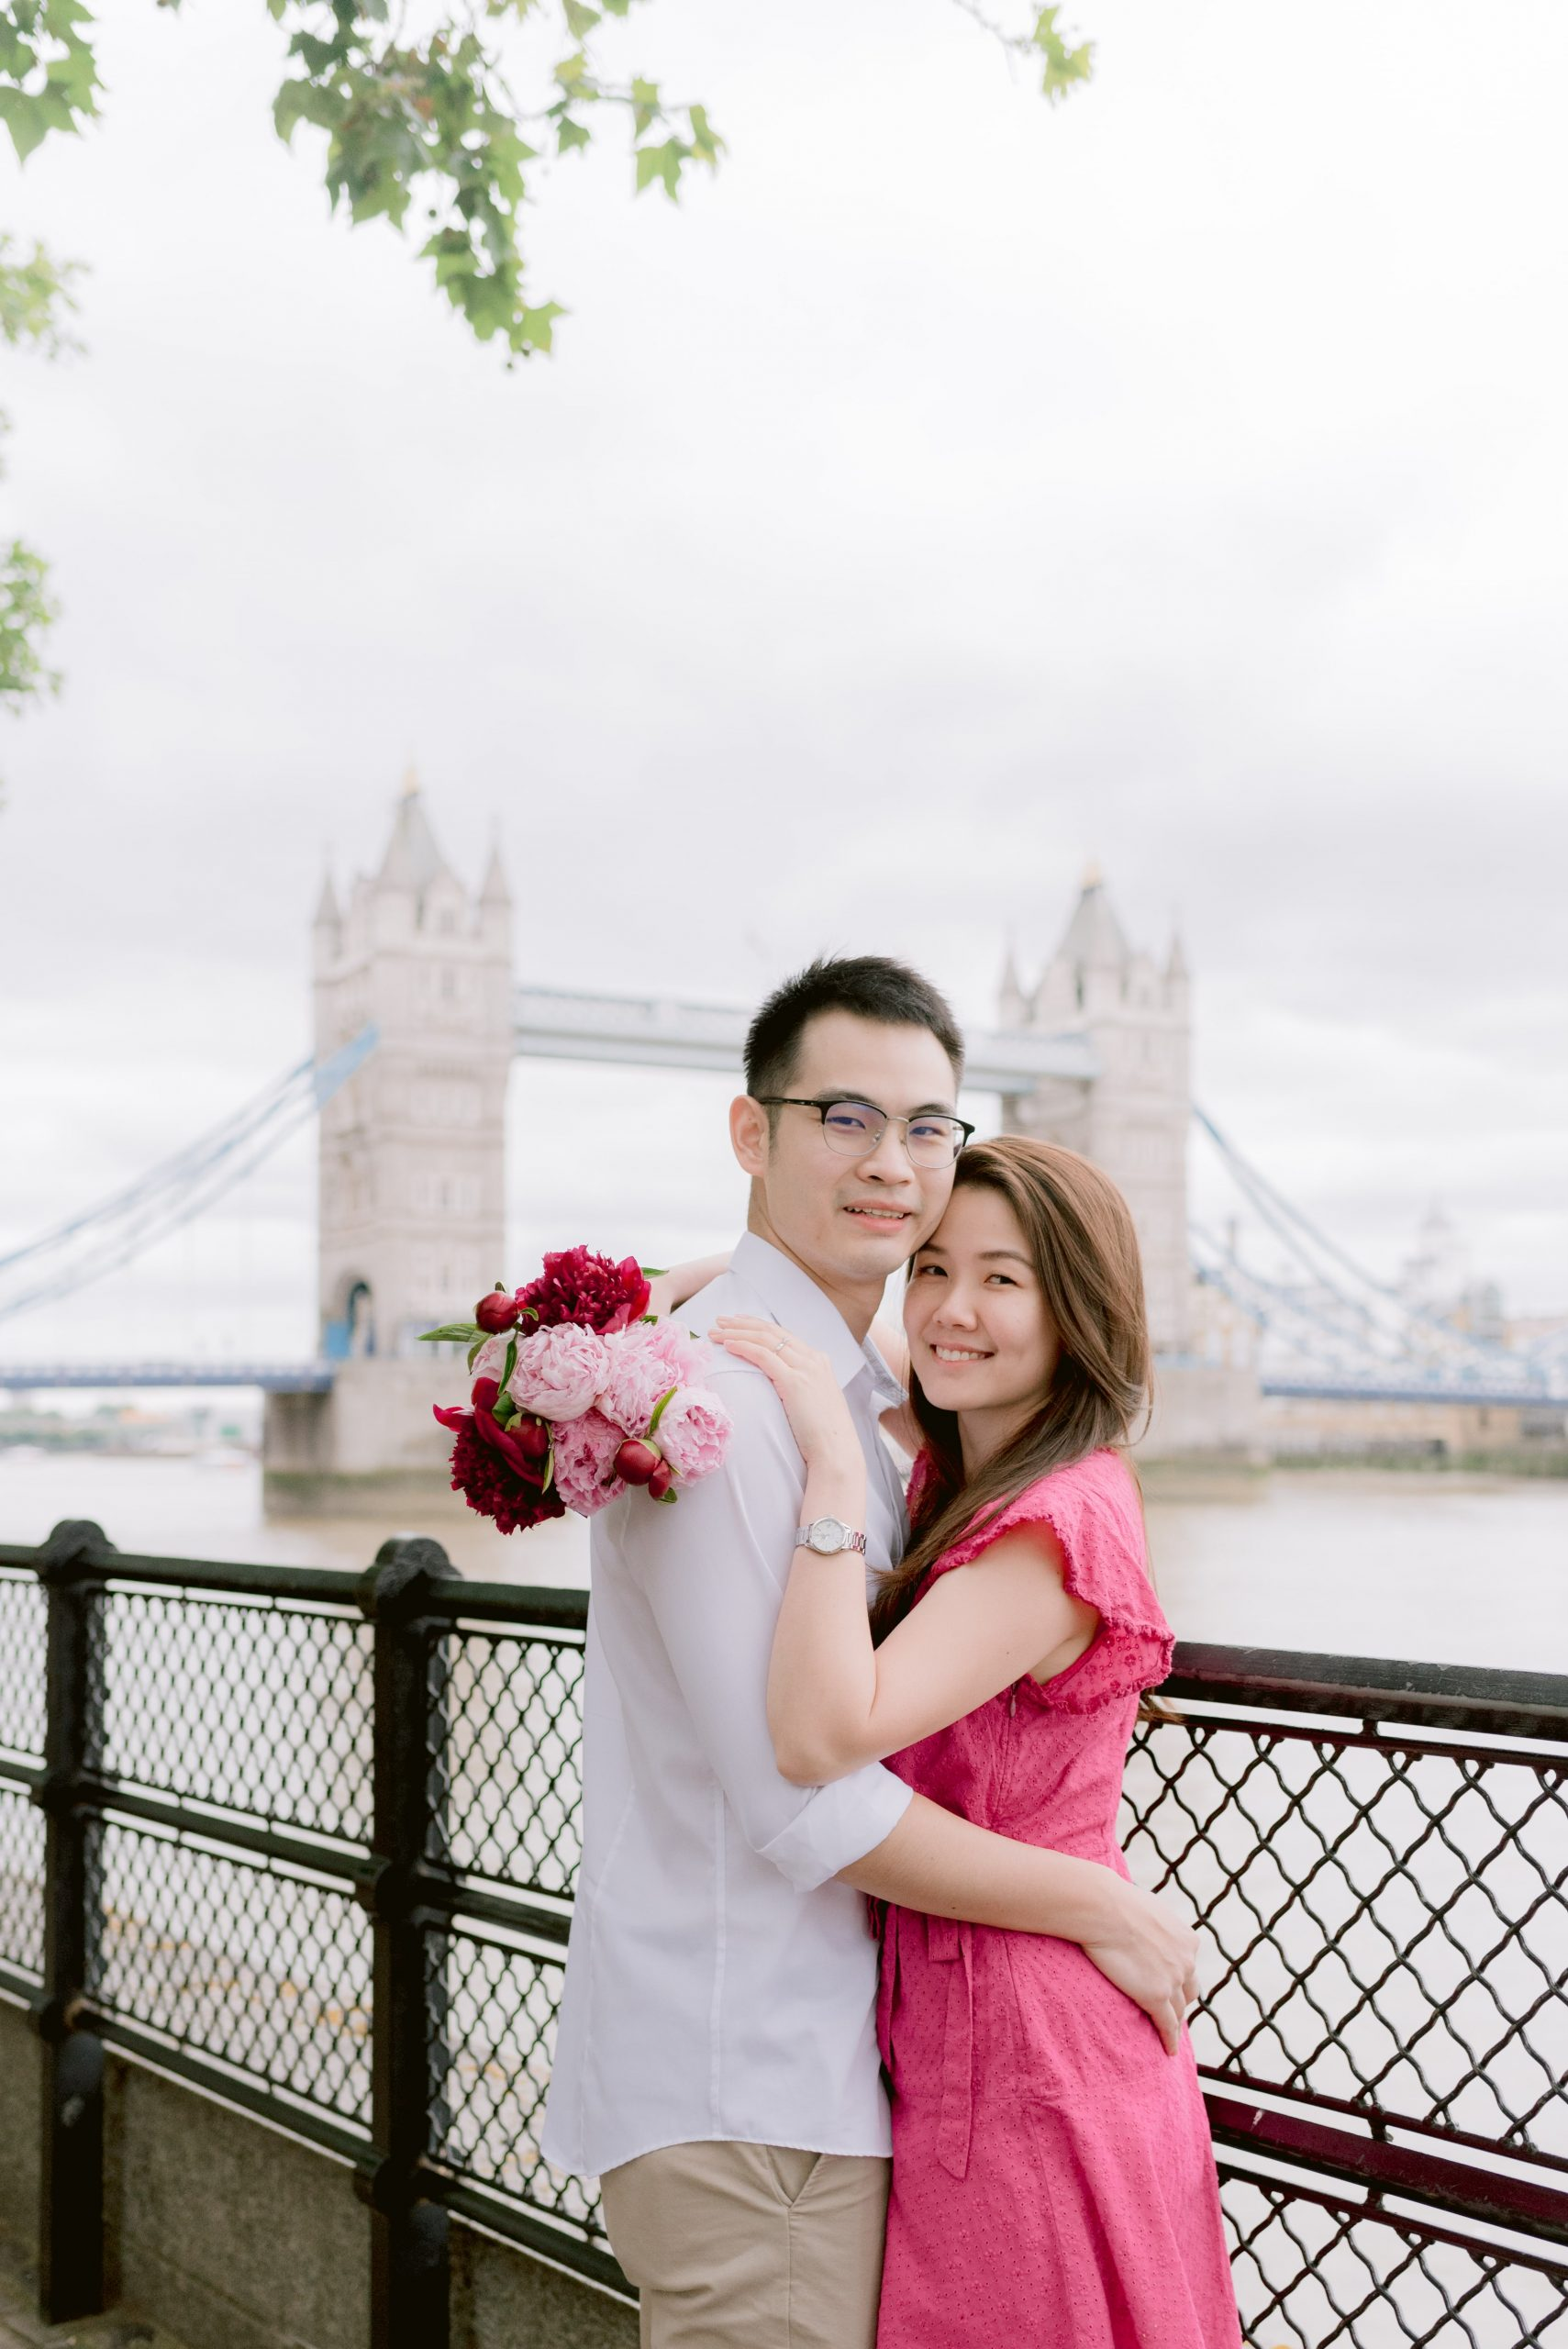 engagement session in London near Tower of London and with the view of Tower Bridge in the background - Sweet Escape with Cristina Ilao Photography